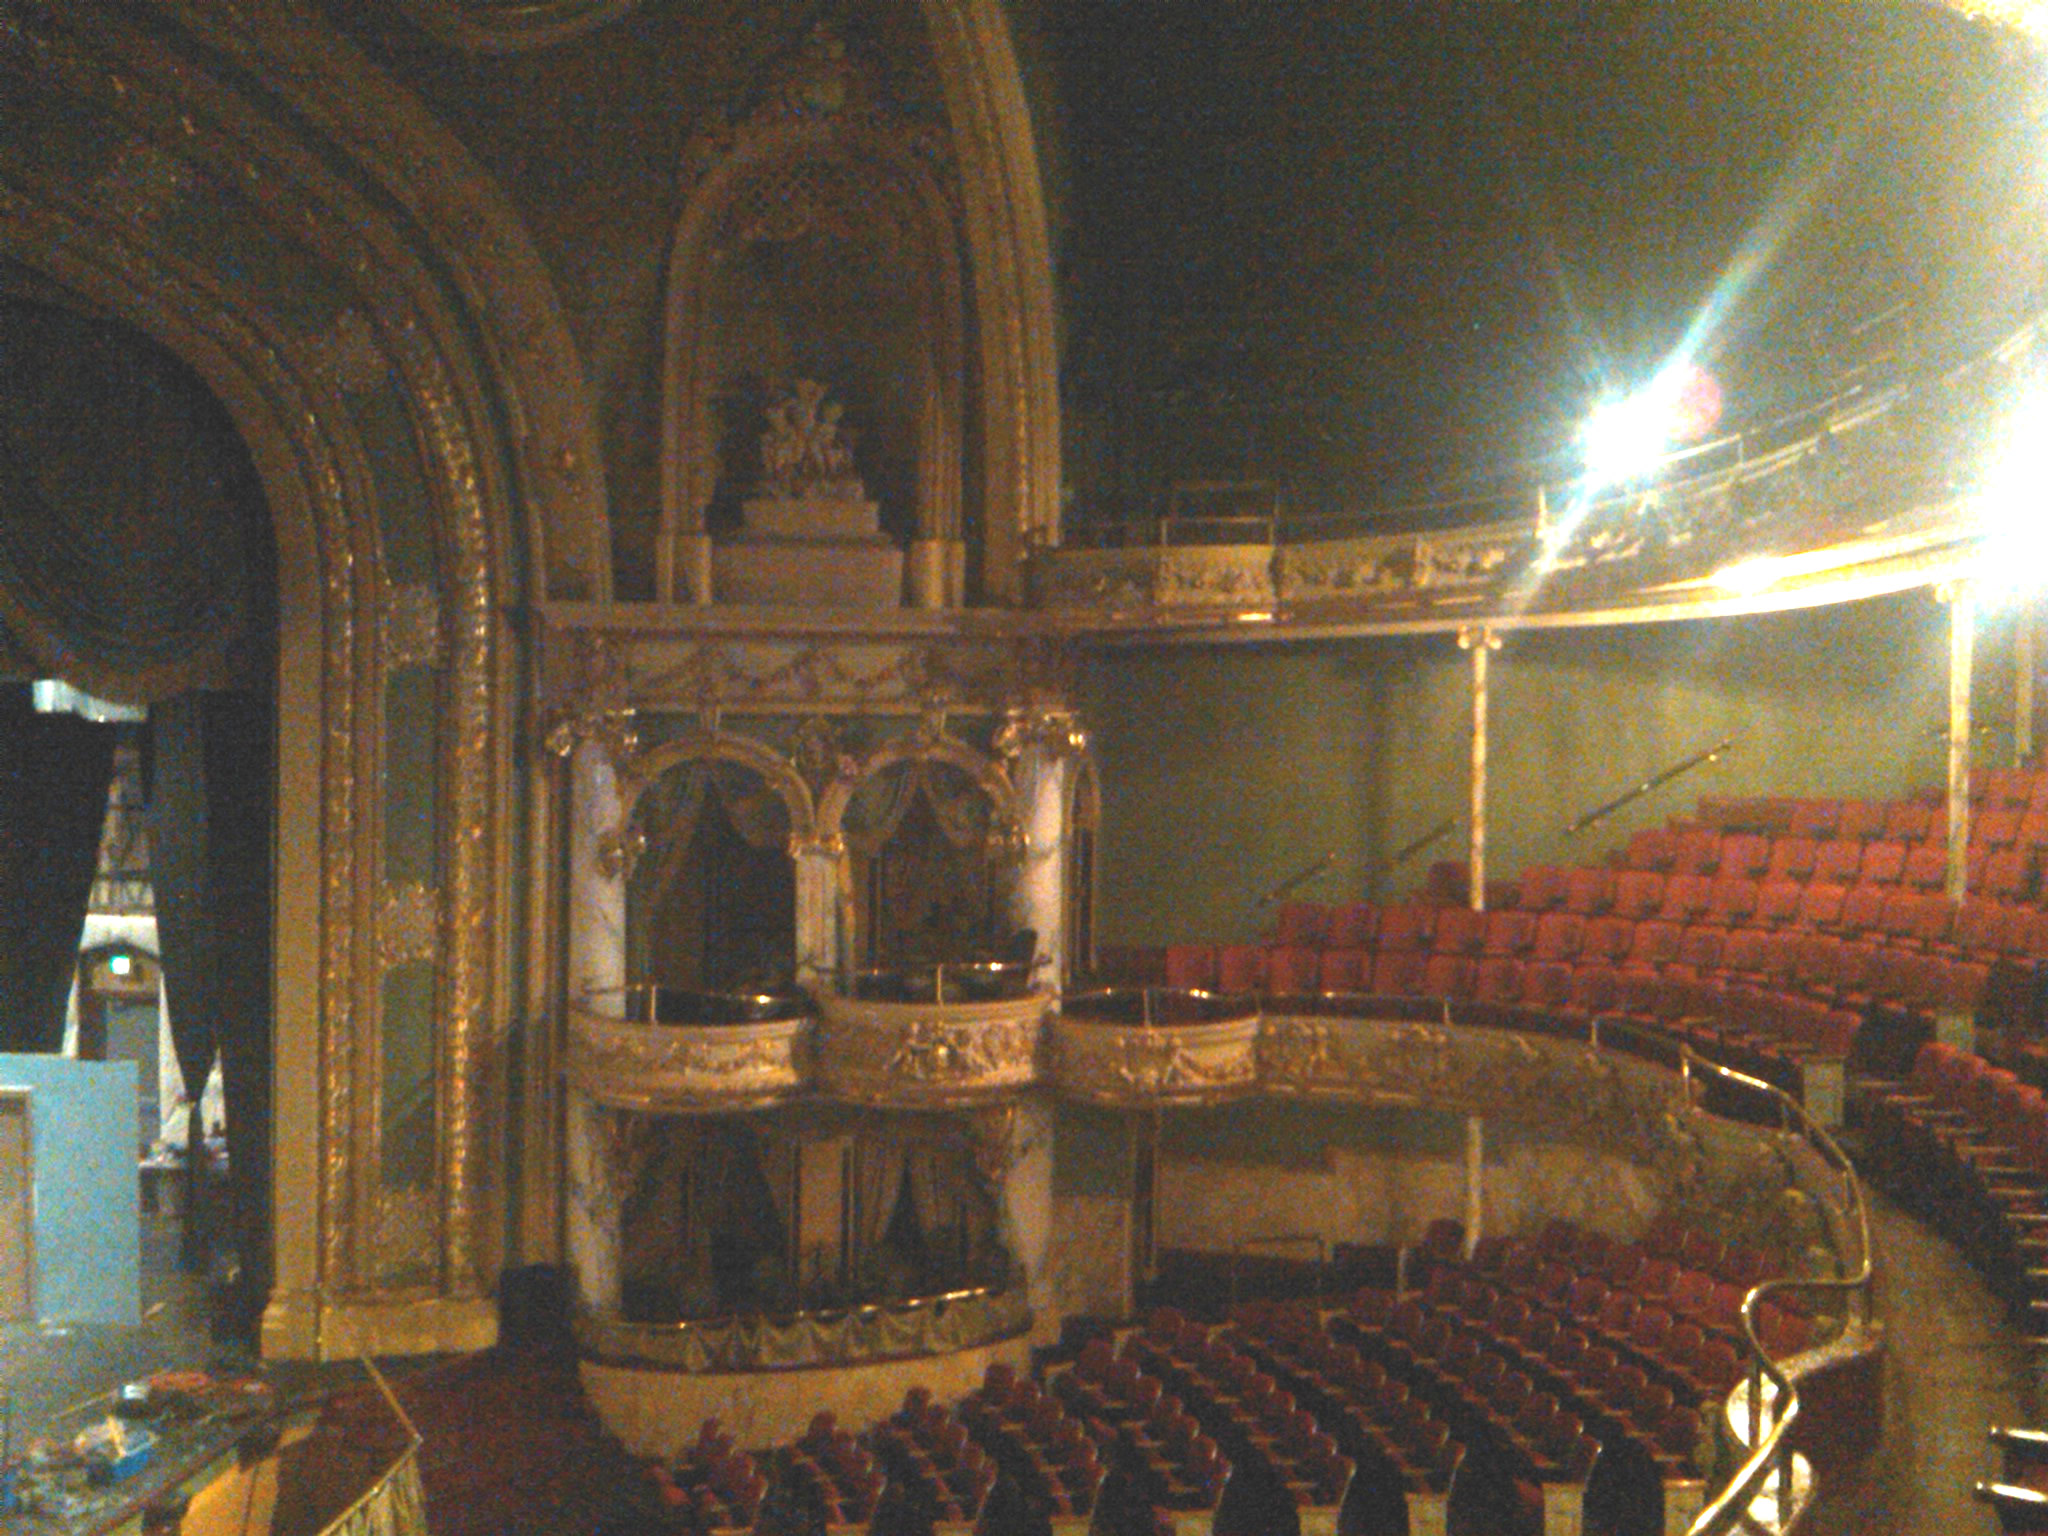 Interior of the Mishler Theatre